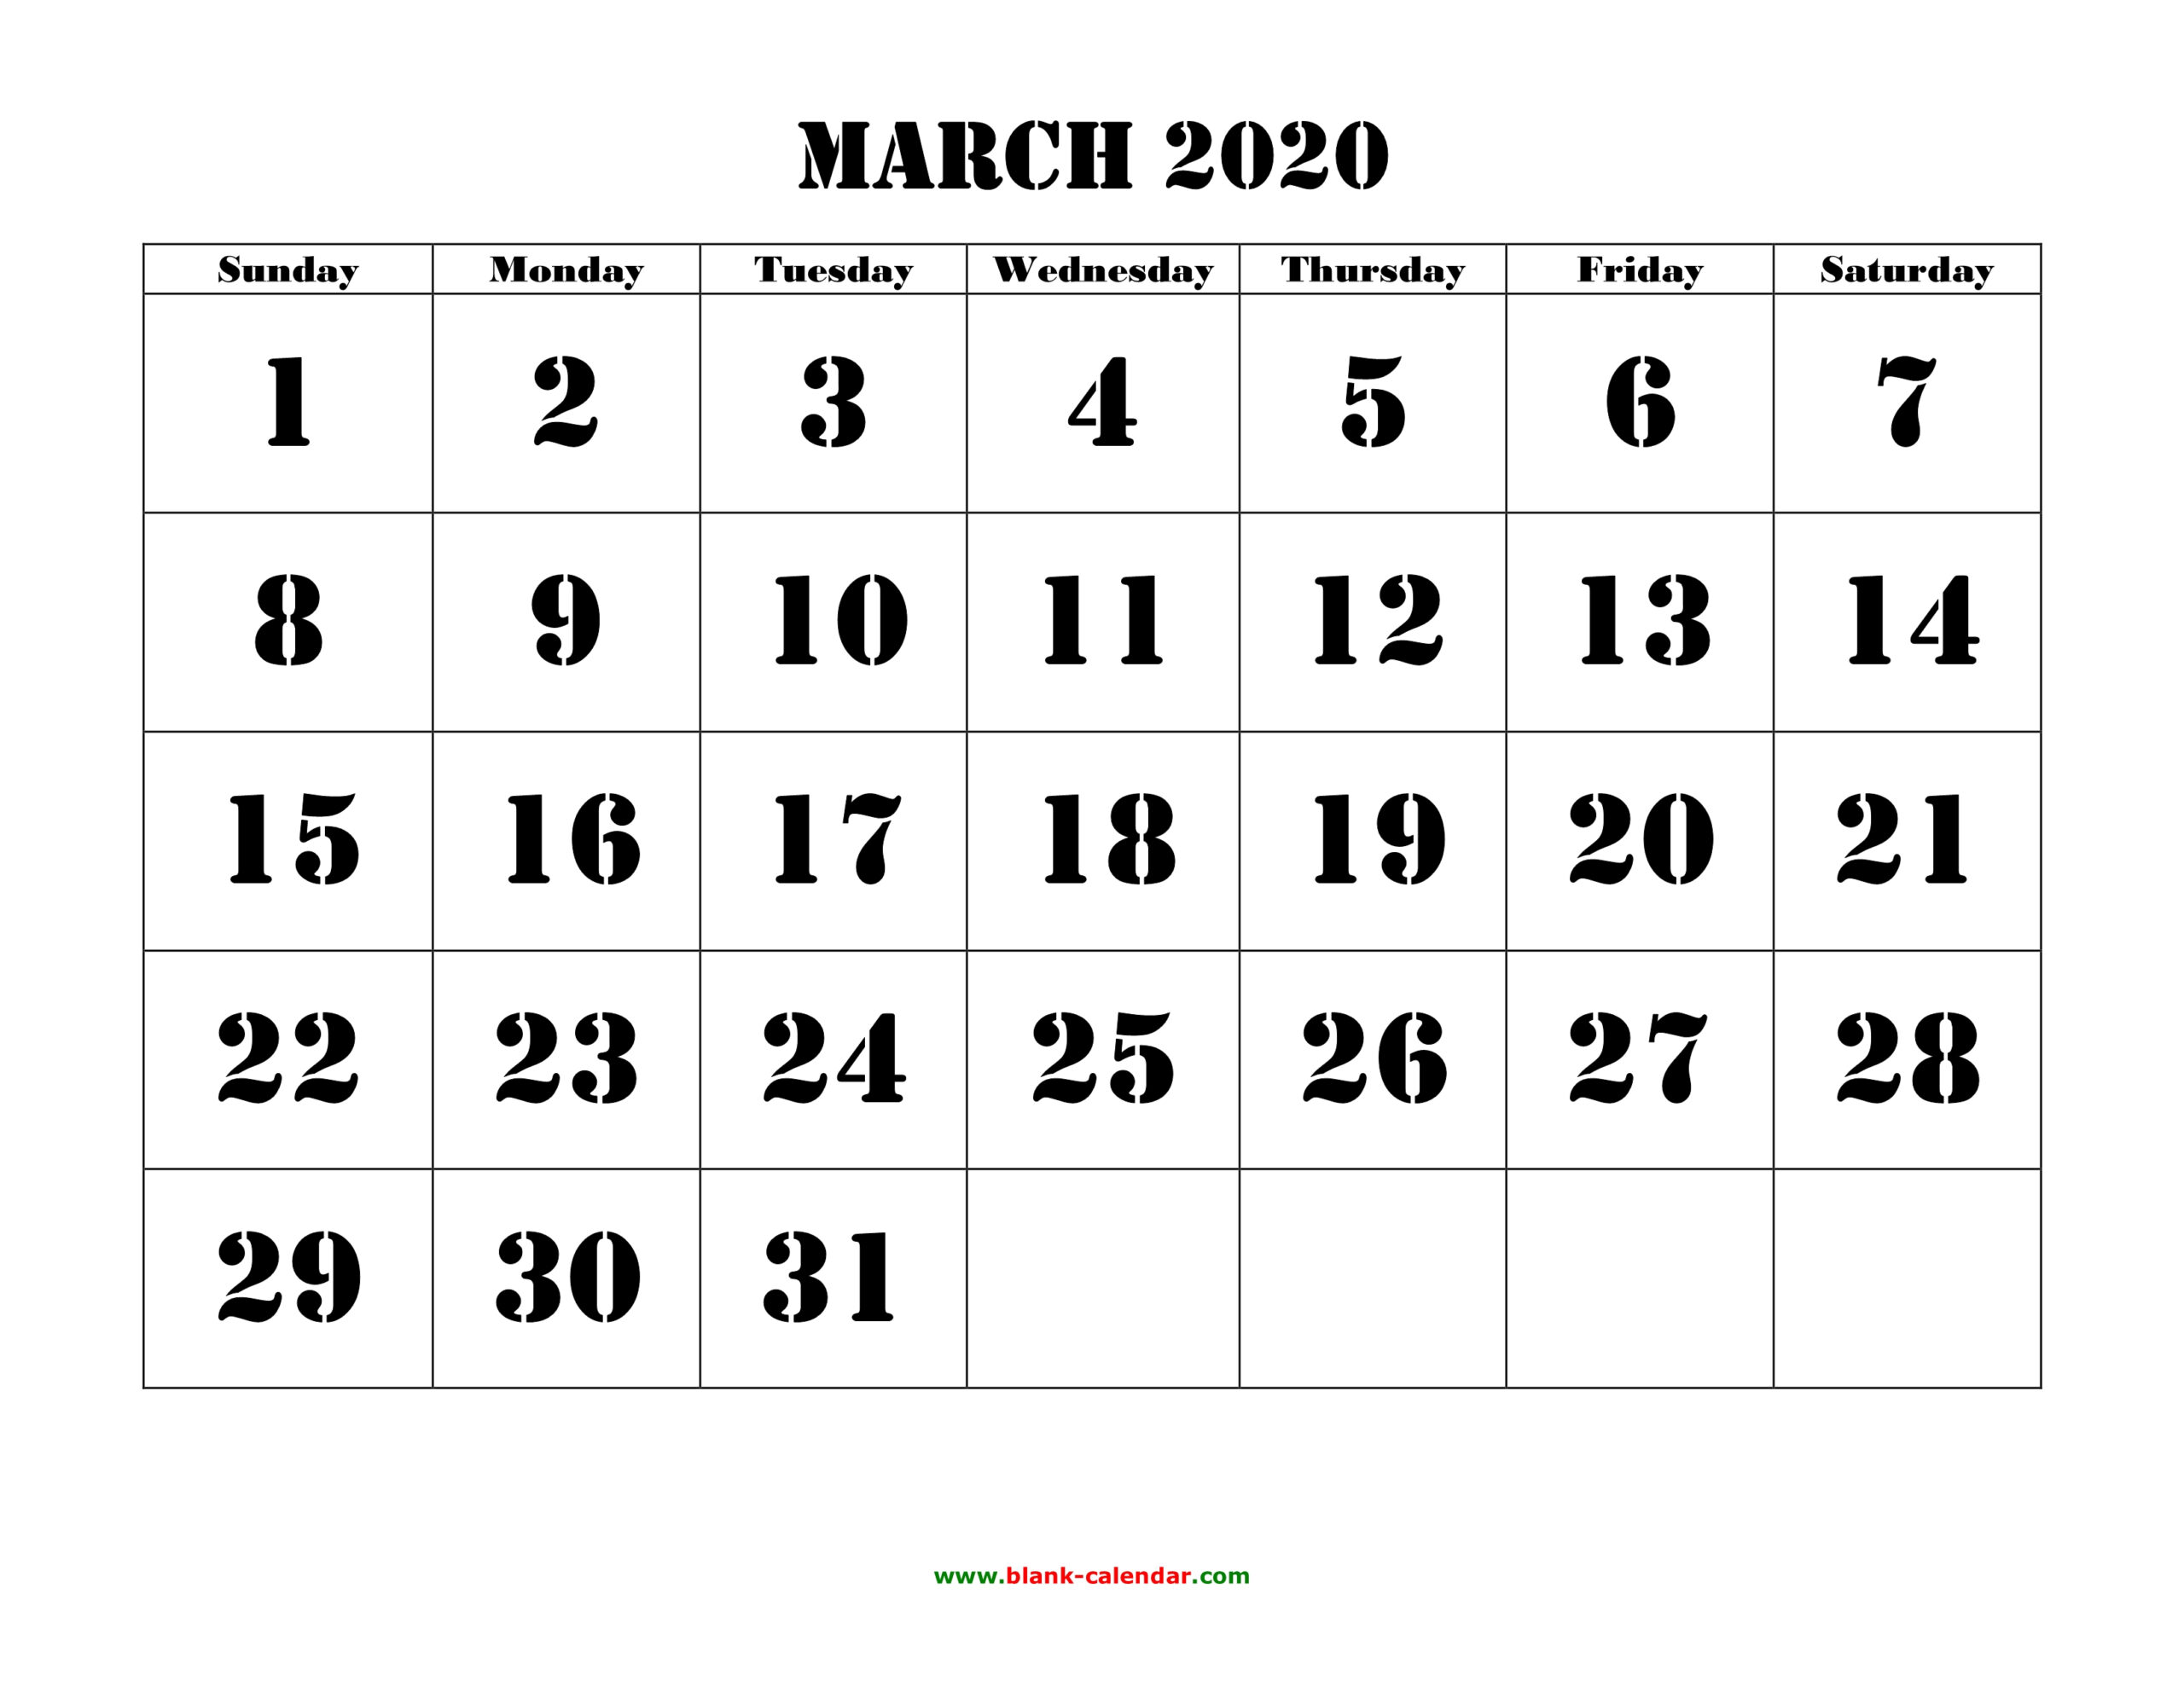 Free Download Printable March 2020 Calendar, Large Font in Large Bold Printable Calendar